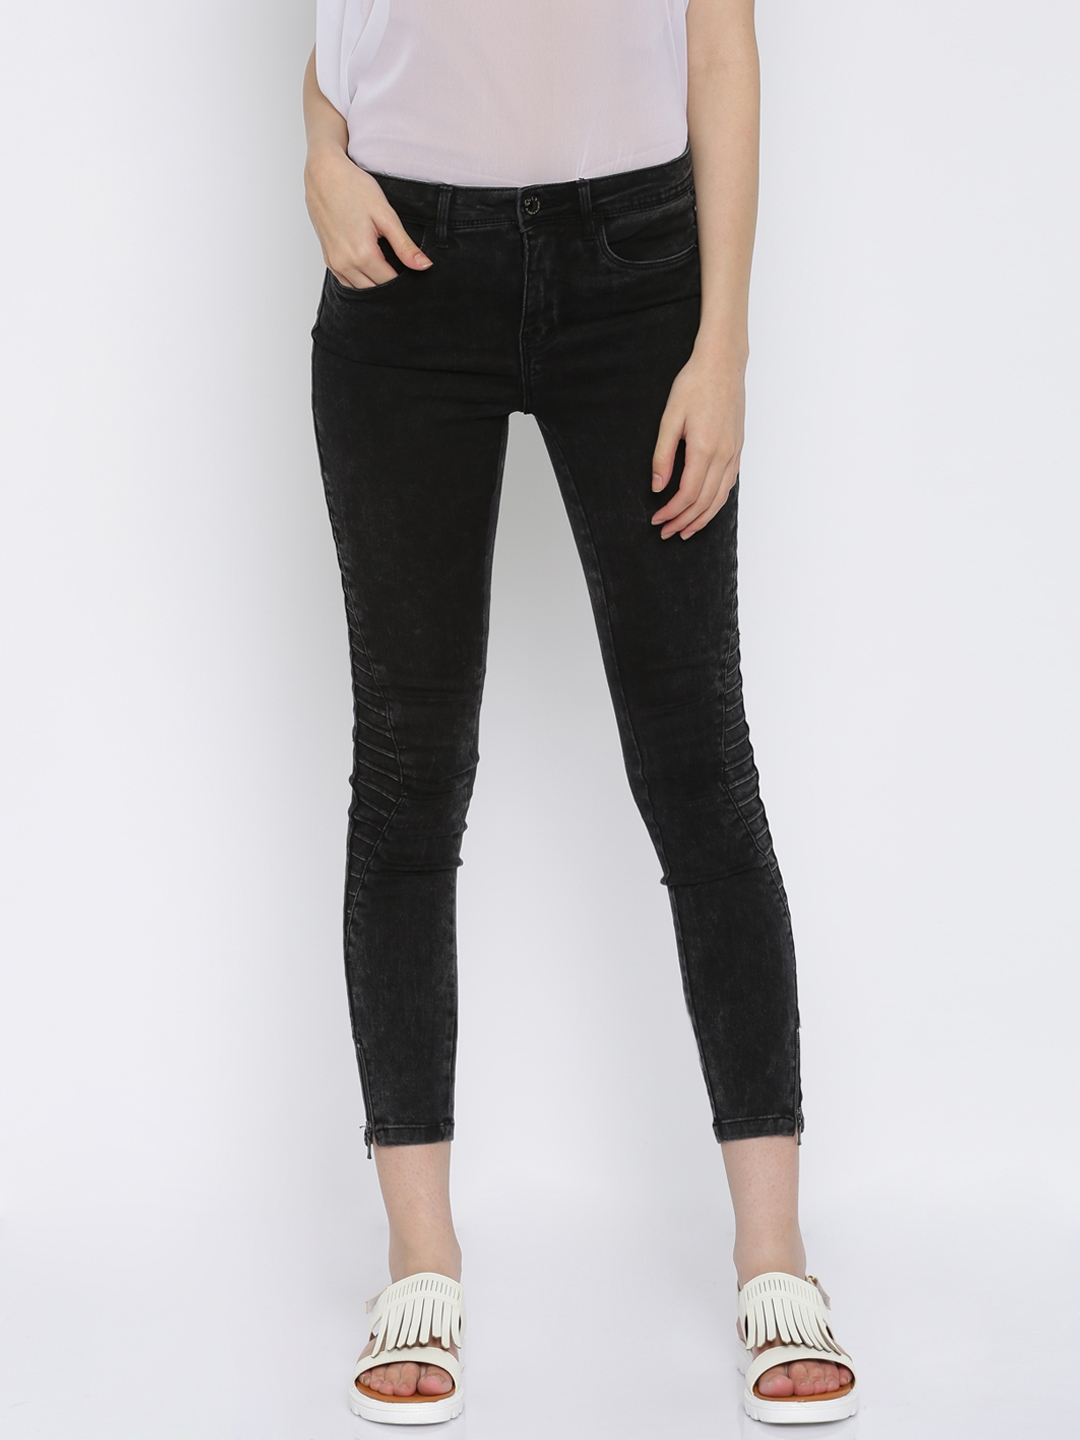 821bfef82 Buy ONLY Women Black Skinny Fit Jeans - Jeans for Women 1765384